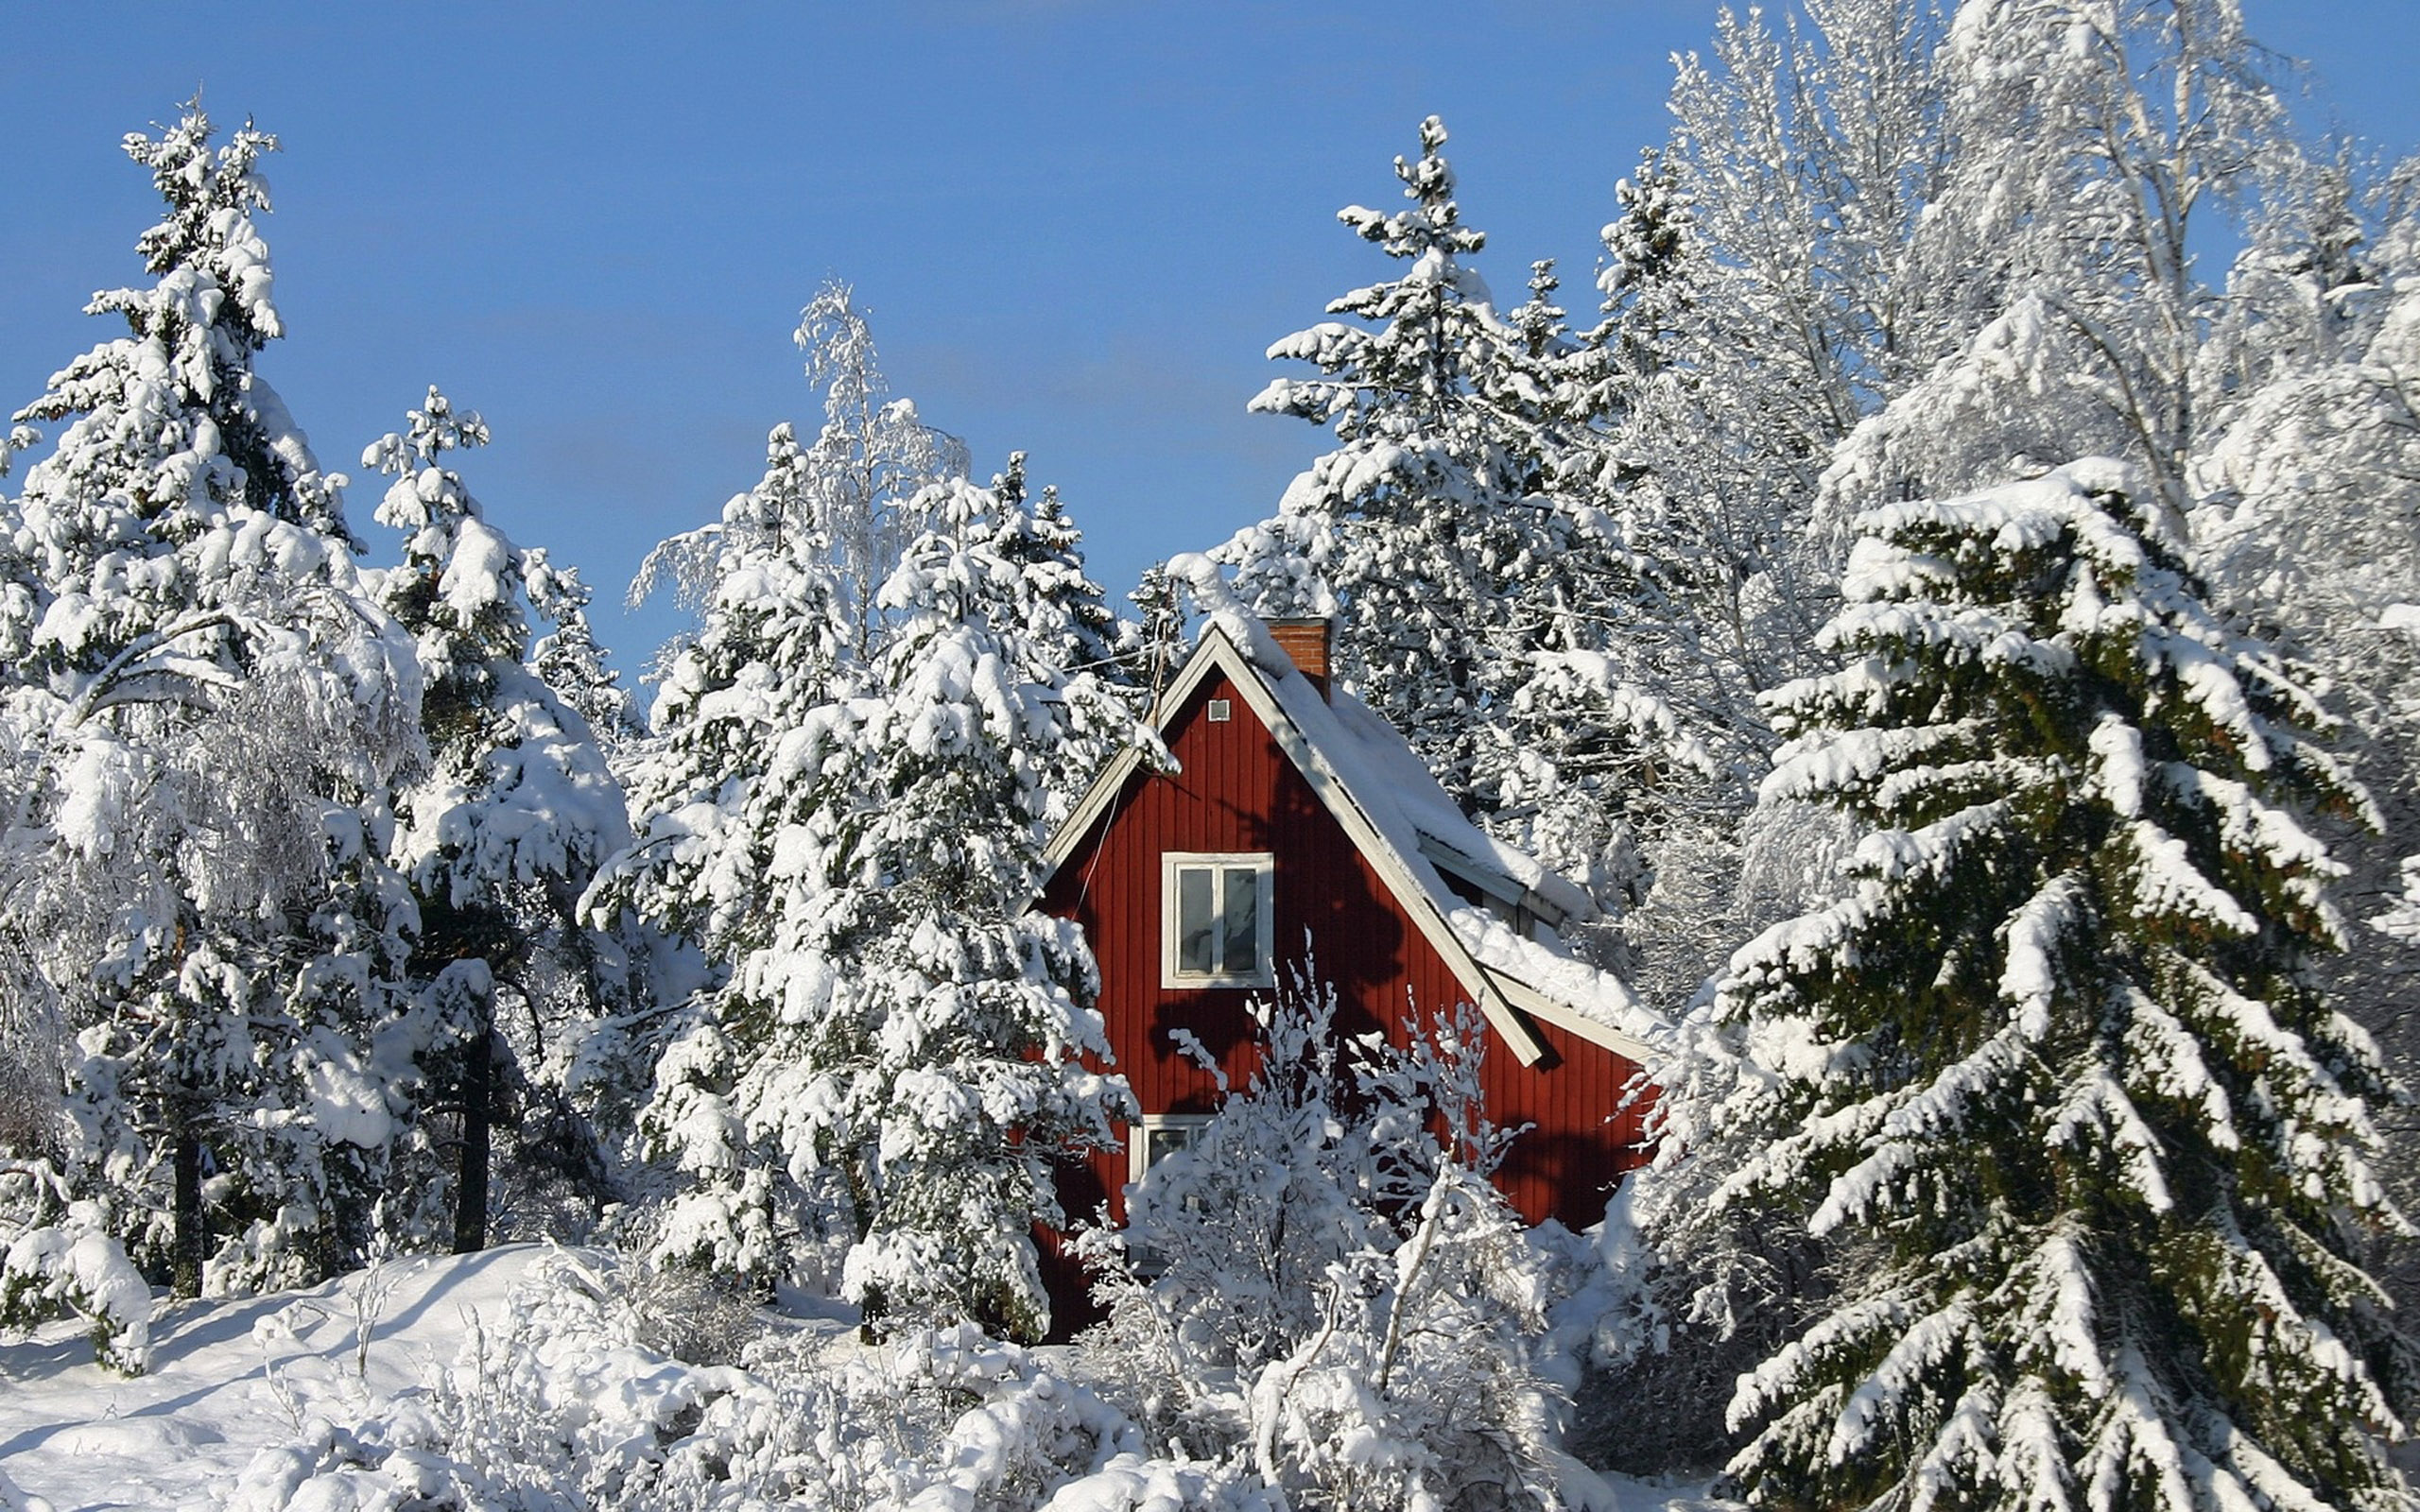 winter and snow scenes free desktop wallpapers for